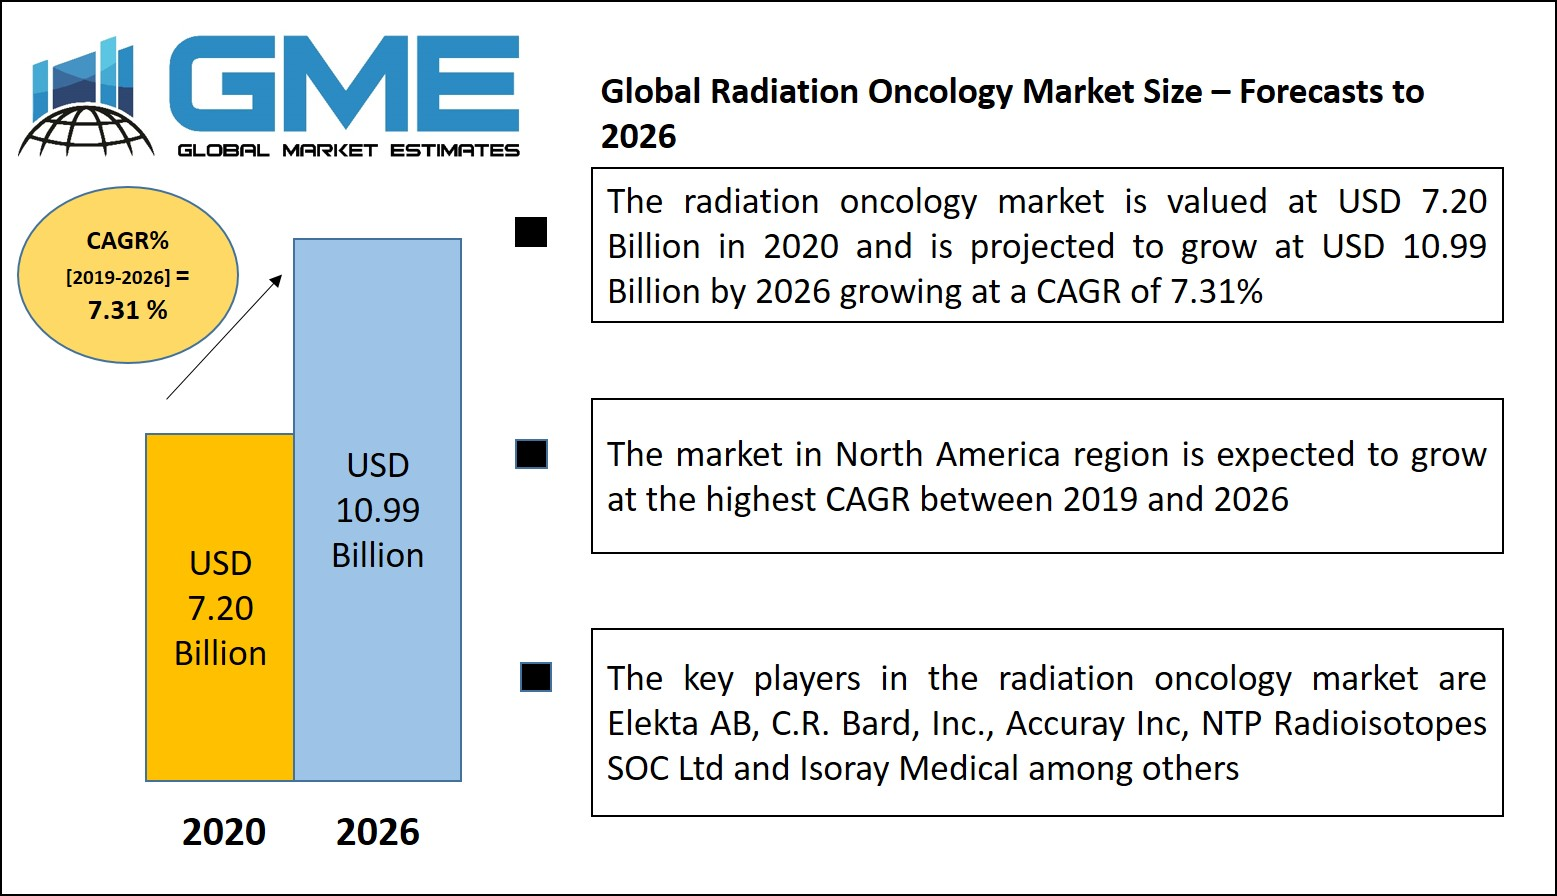 Global Radiation Oncology Market Size – Forecasts to 2026